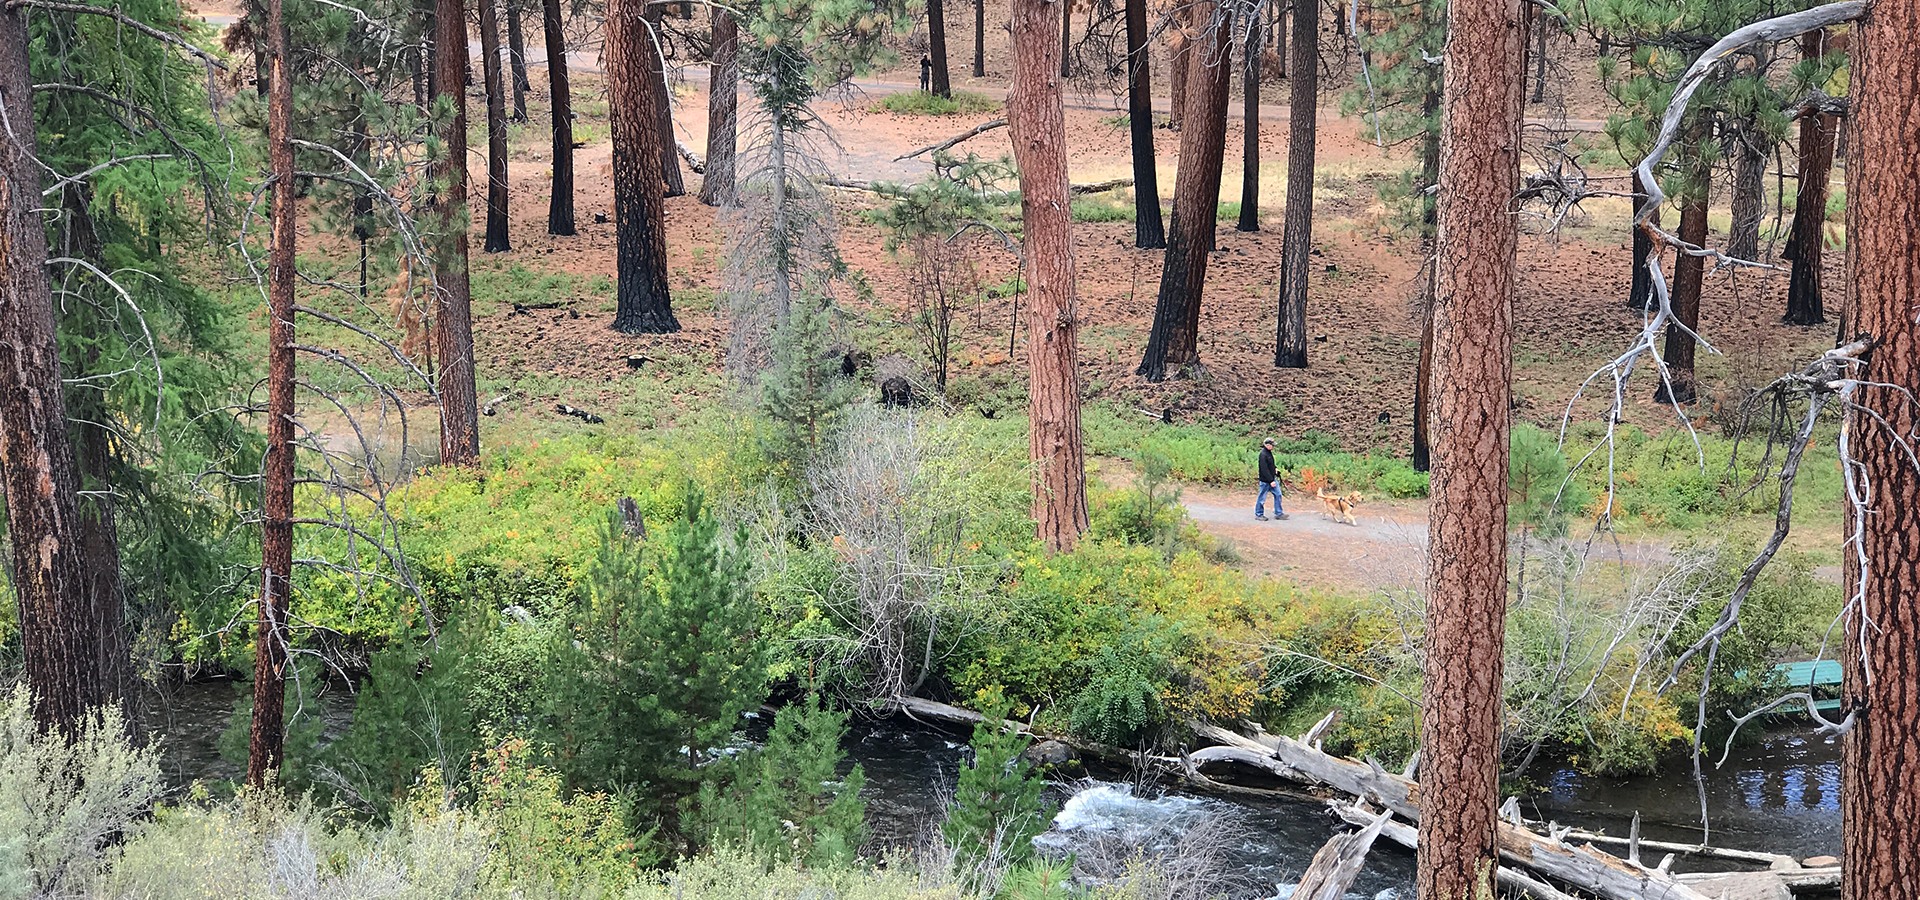 Image of Tumalo Creek and a dirt trail in Shevlin Park.